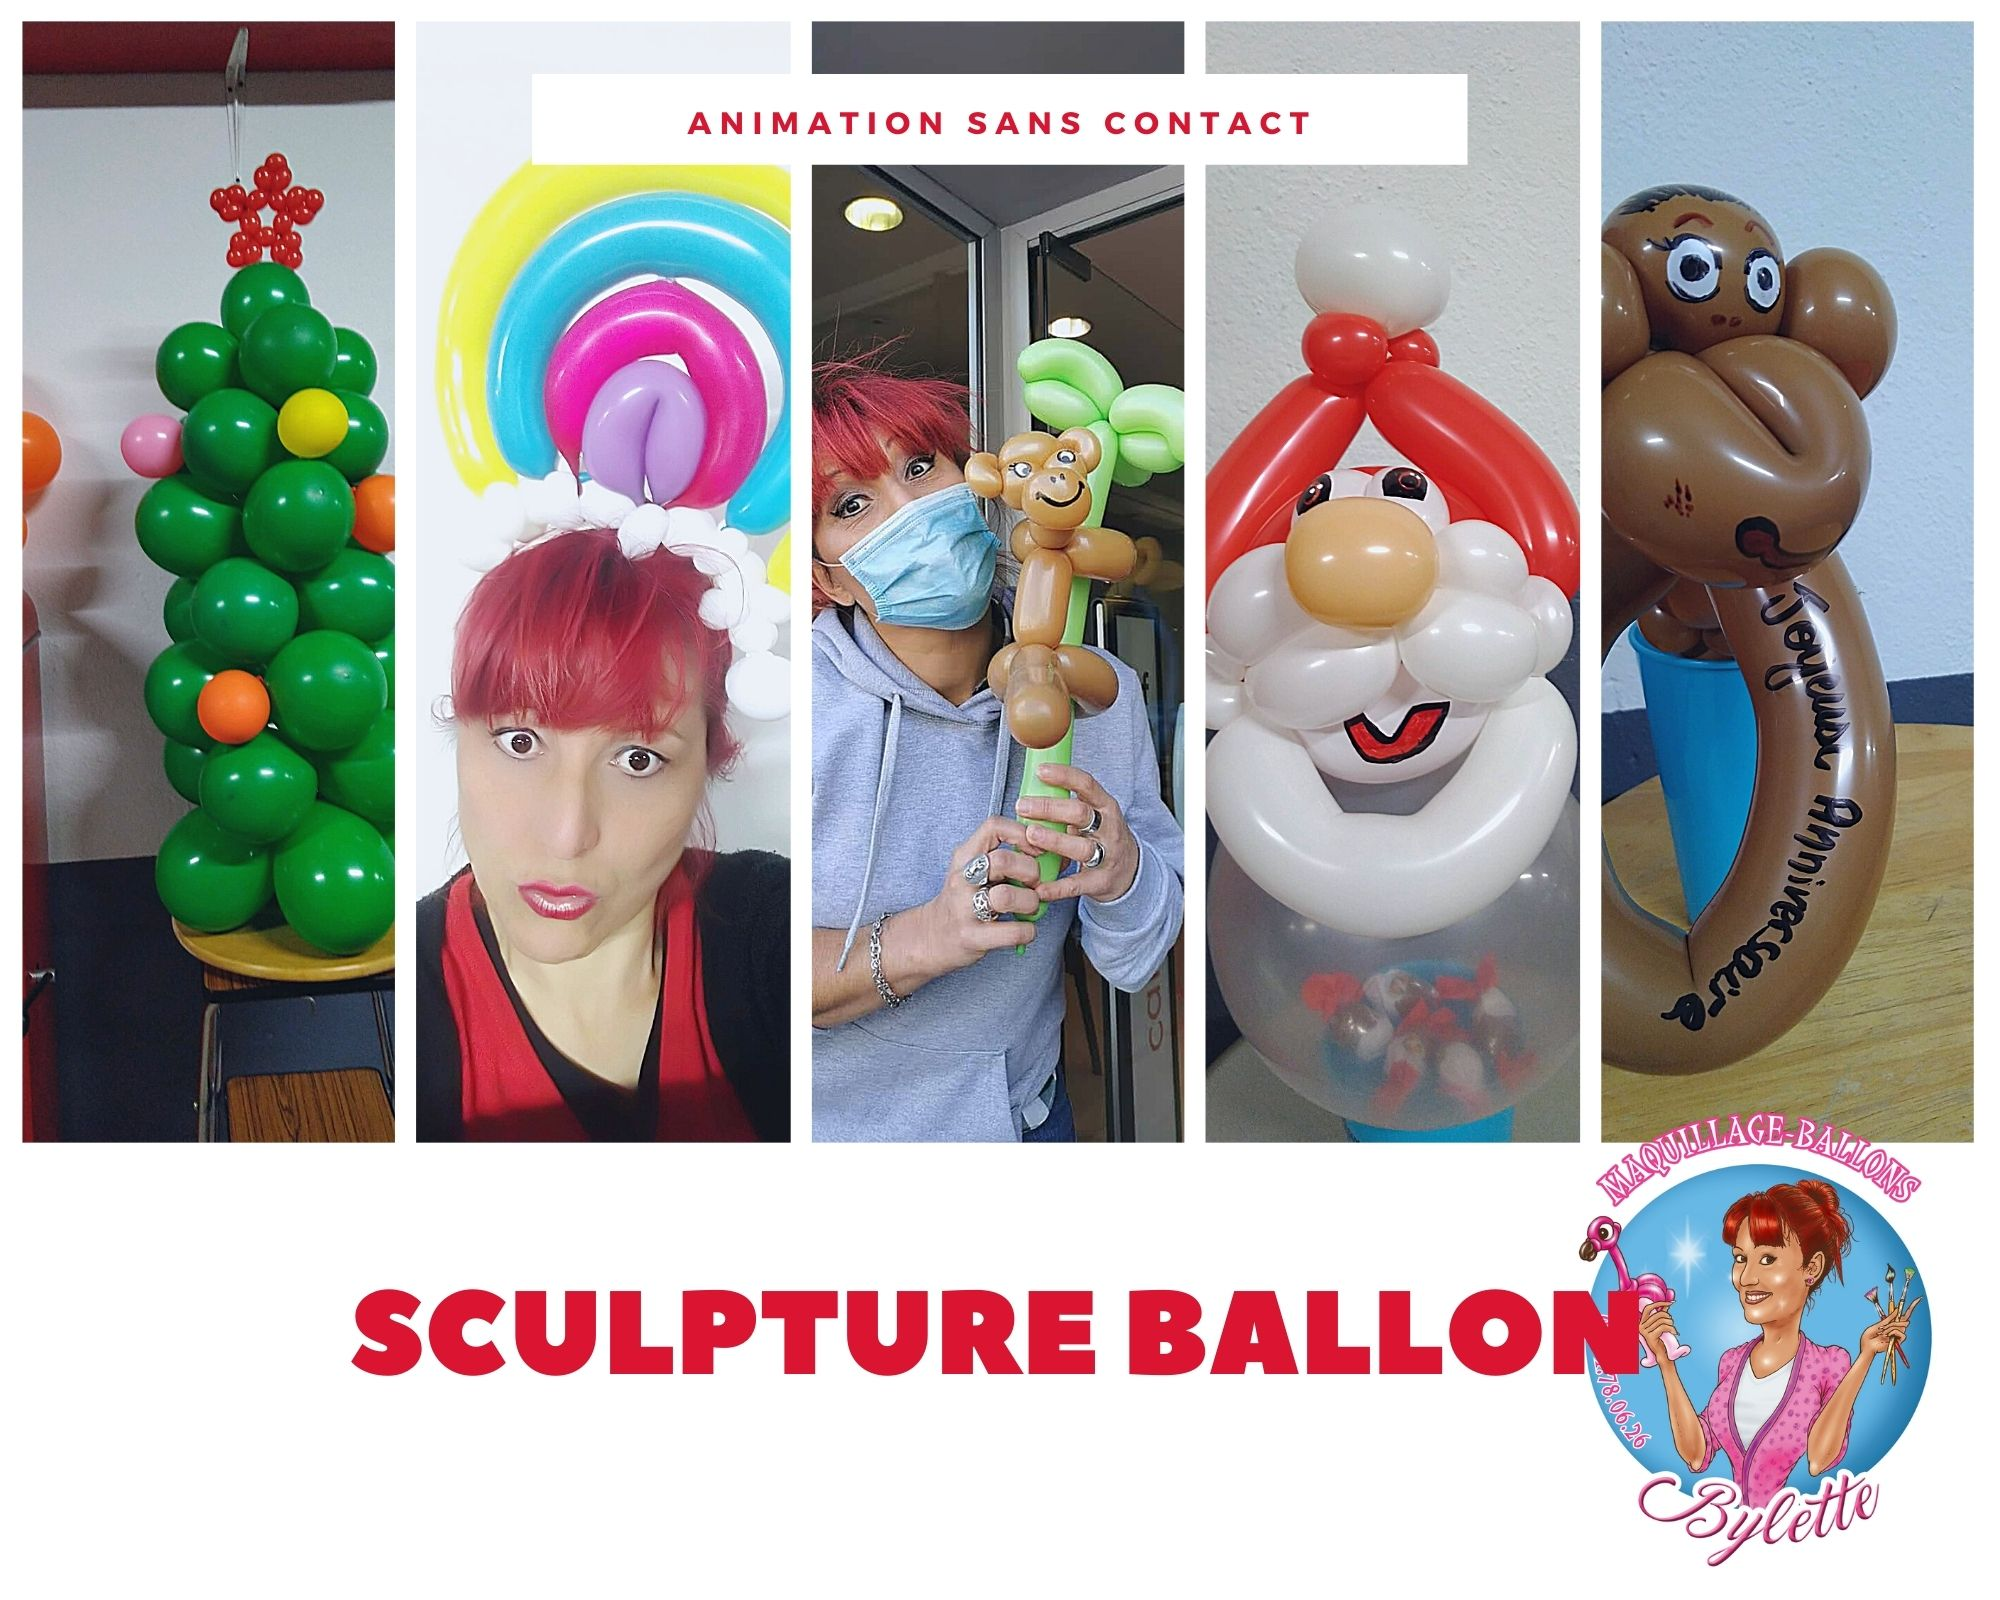 Animation sculpture ballon sans contact